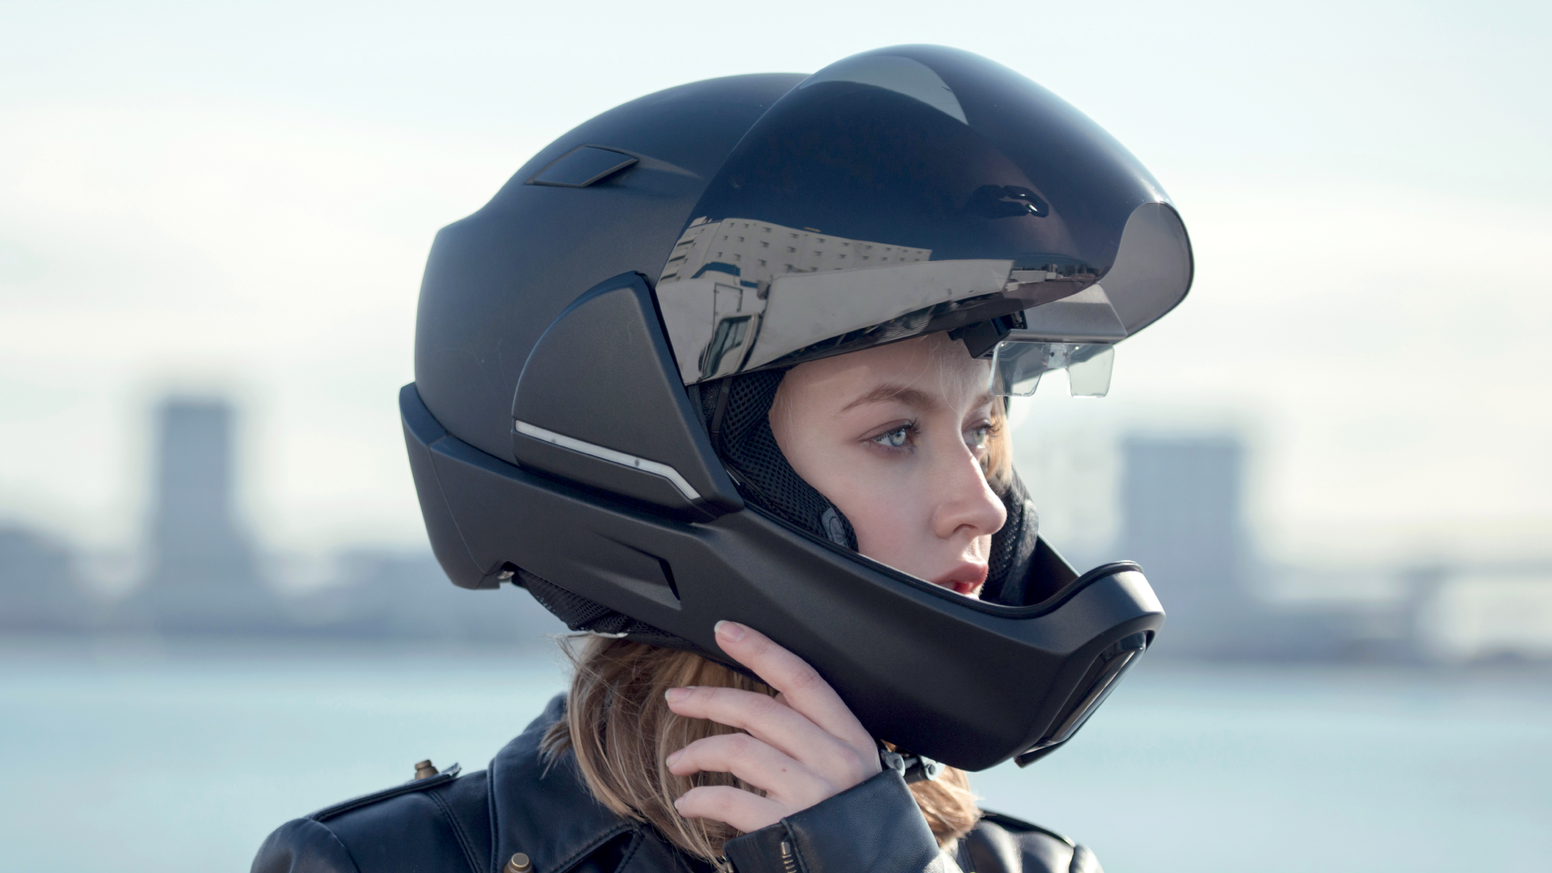 The CrossHelmet is a next generation motorcycle helmet with sound control & 360° visibility that will transform your riding experience. Pre-order on our website today for a discounted price off retail!